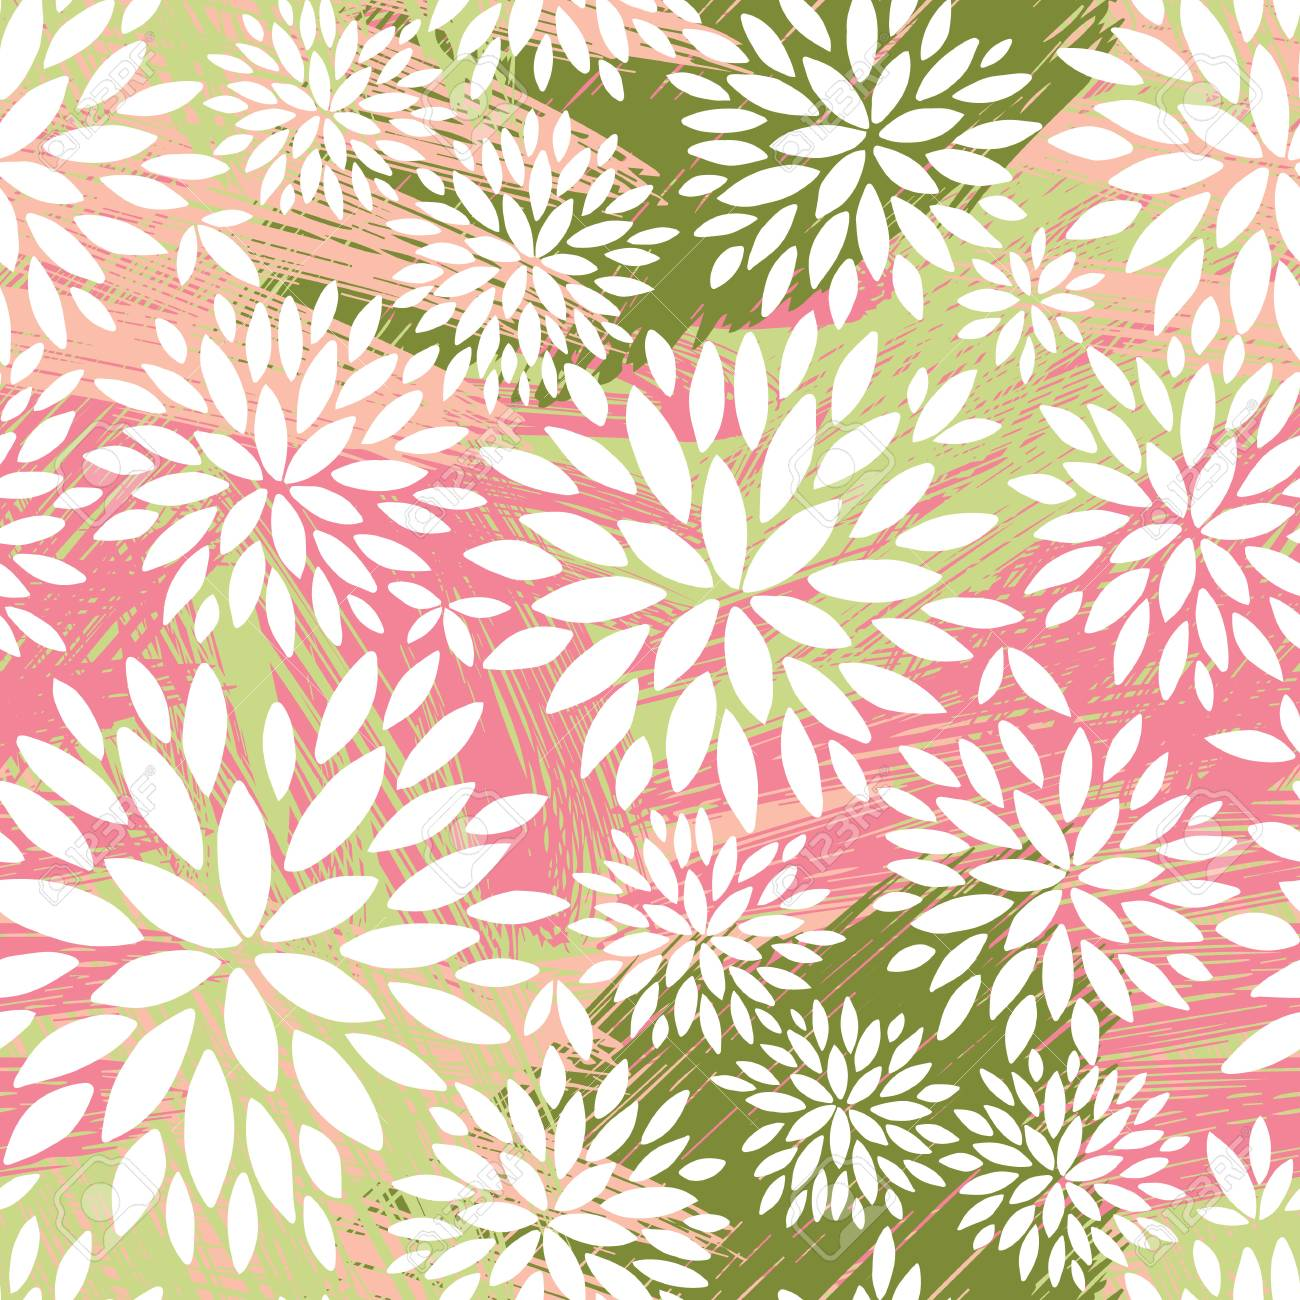 Seamless Ornamental Floral Pattern Decorative Cute Background